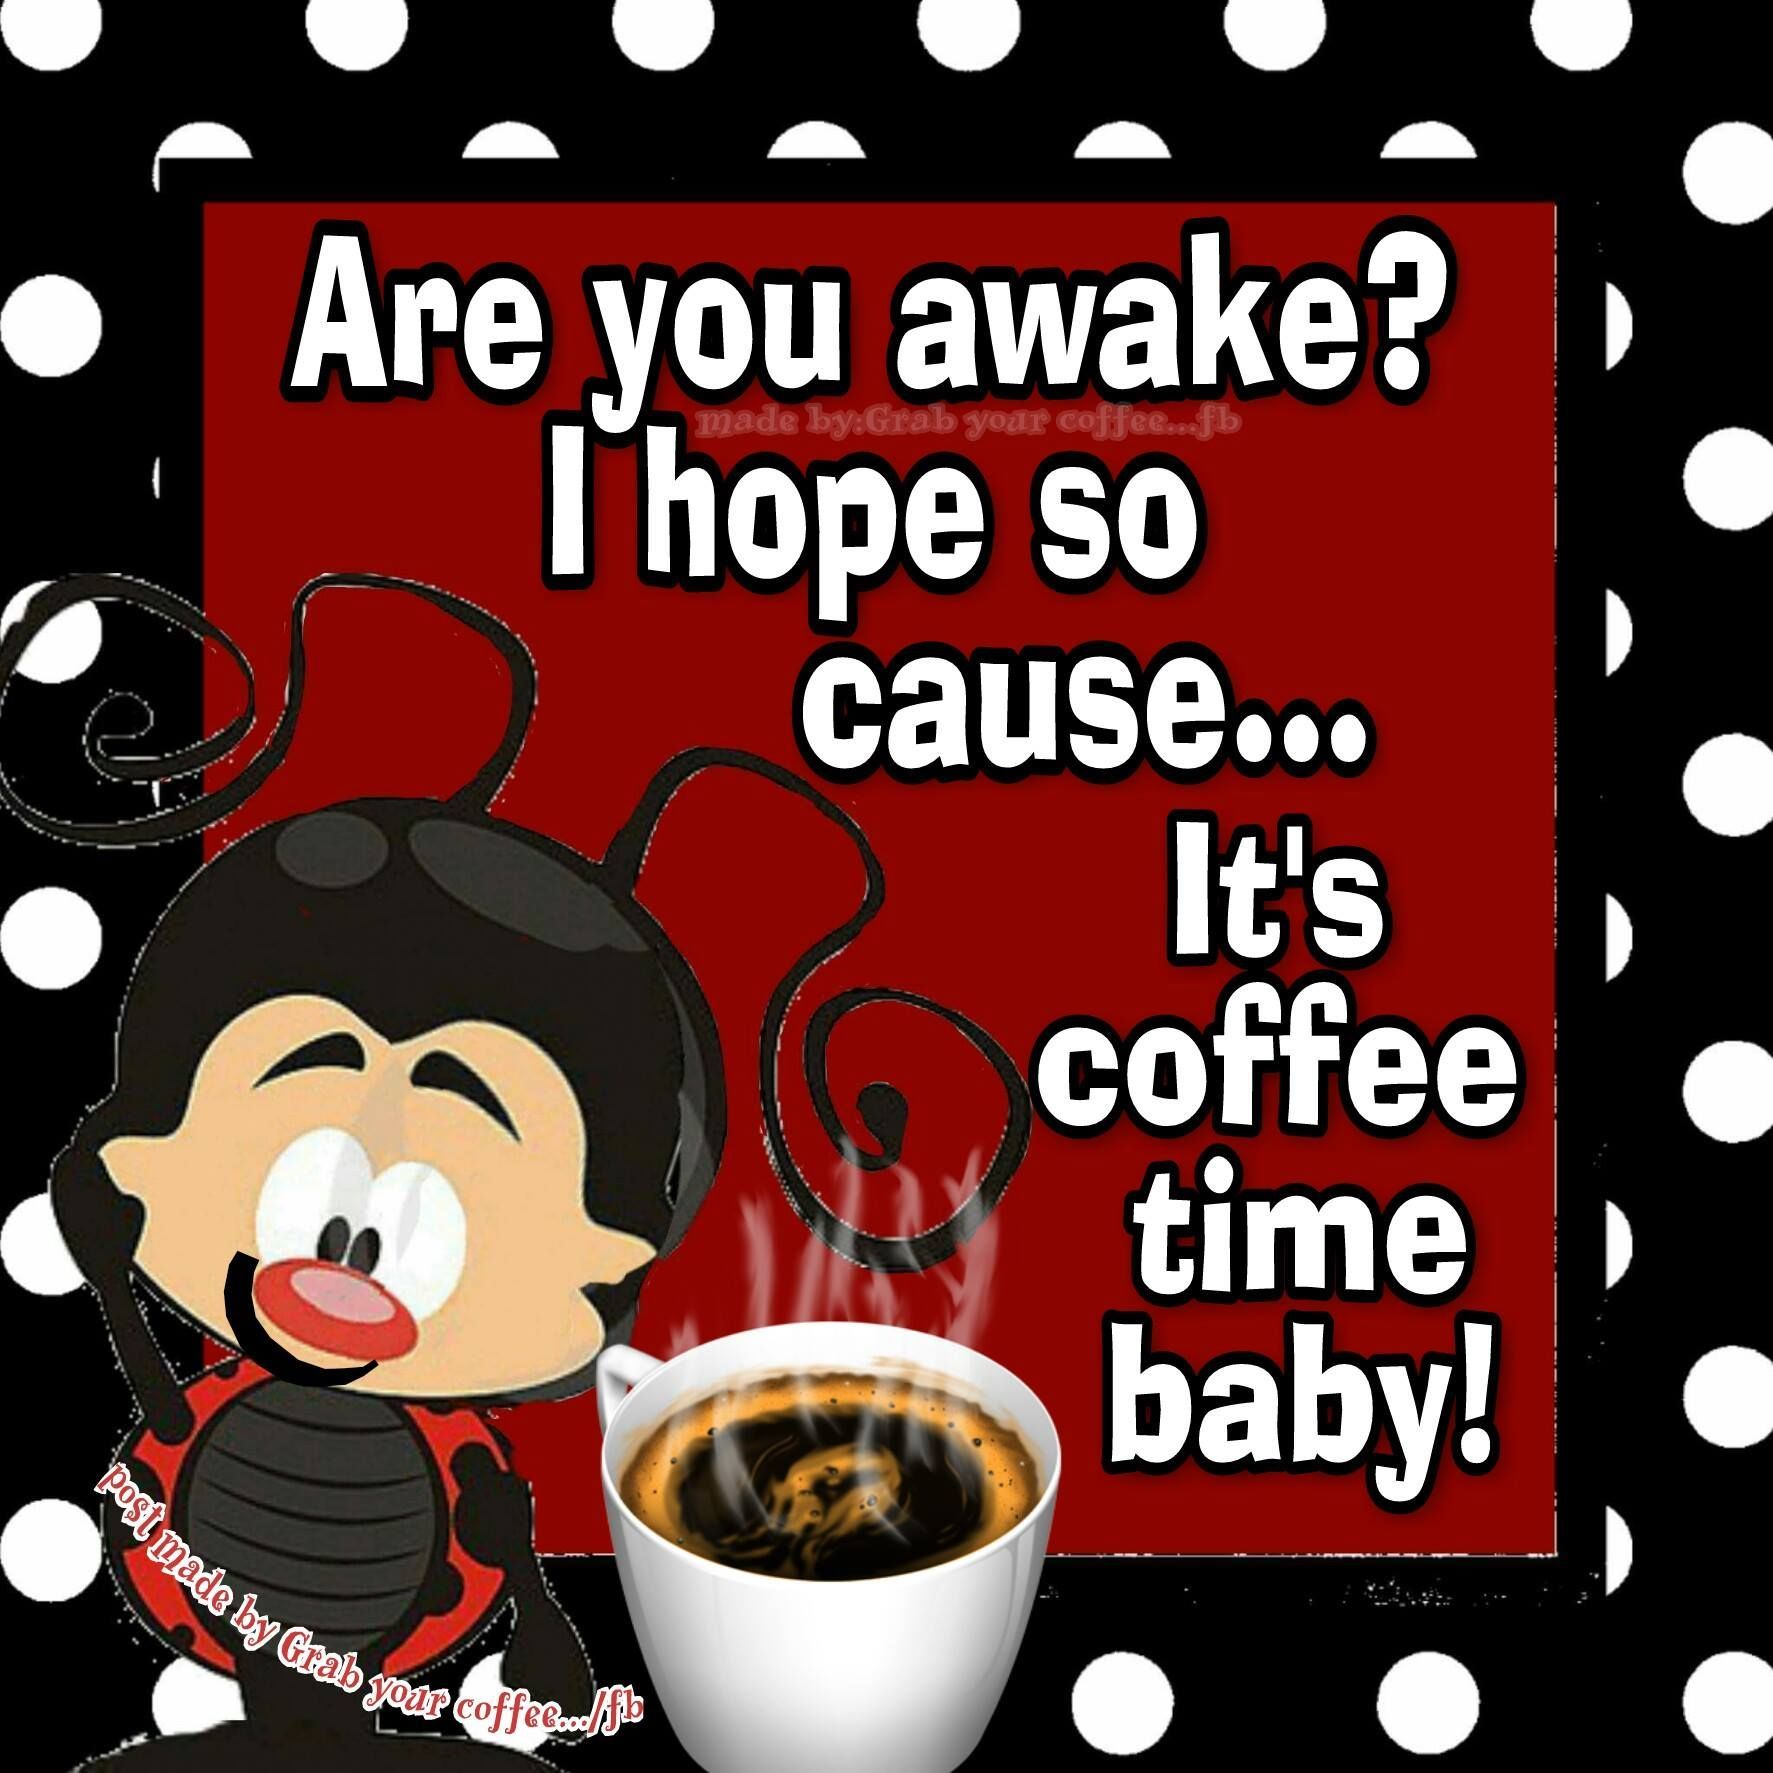 Are You Awake I Hope So Cause It S Coffee Time Baby Pictures Photos And Images For Facebook Tumblr Pintere Coffee Infographic Coffee Time Coffee Tumblr